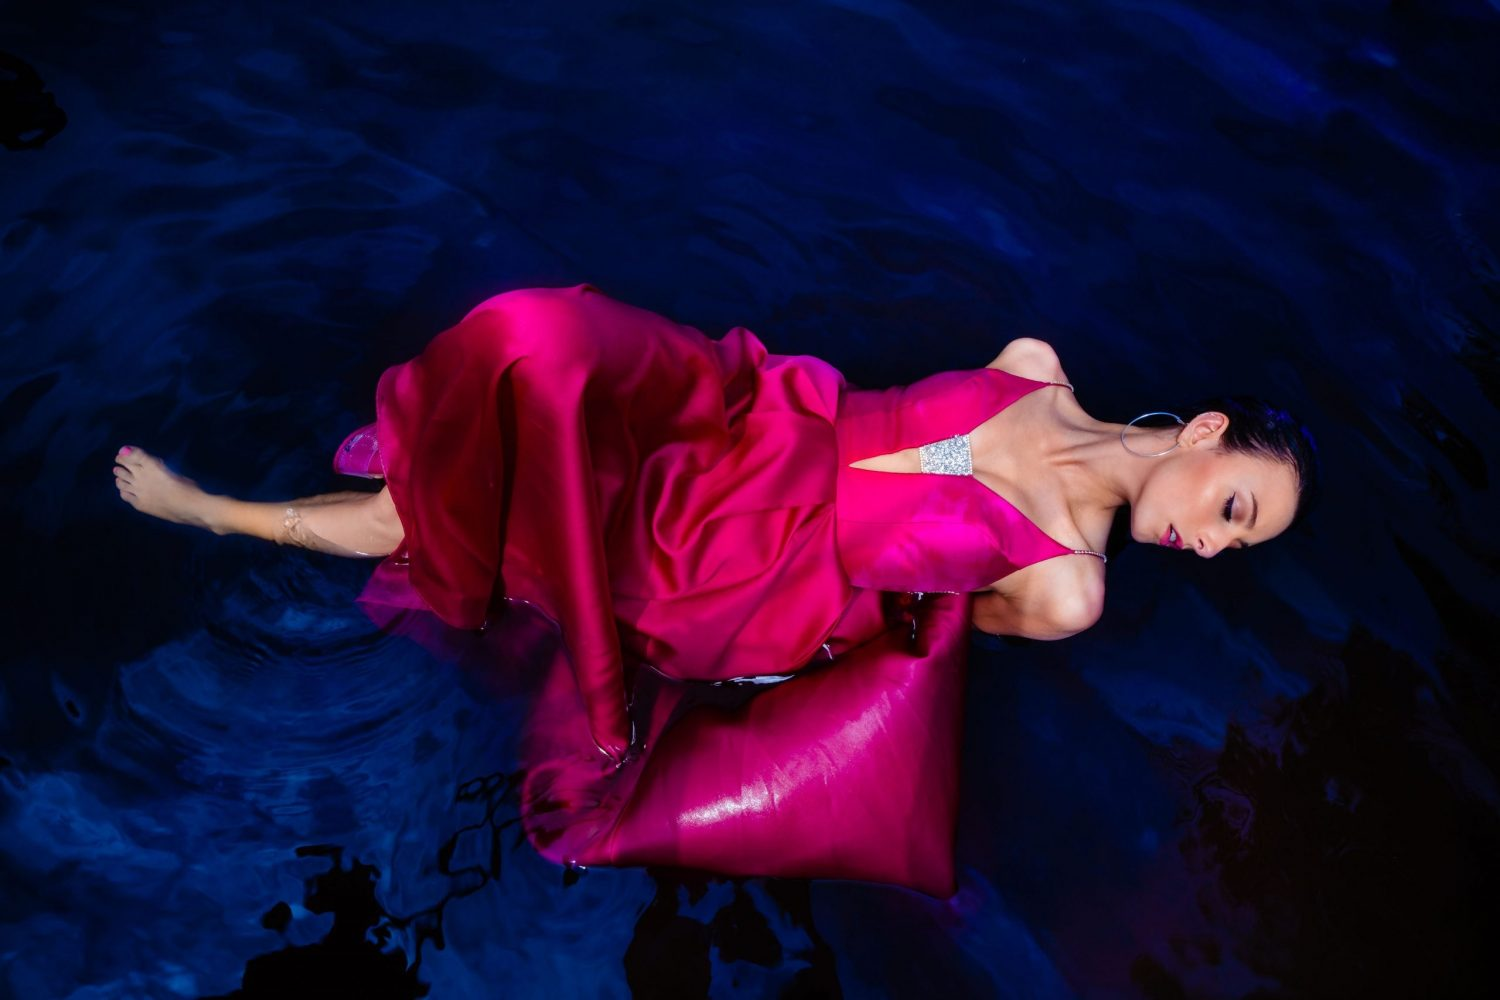 hot pink prom dress in water in Philly